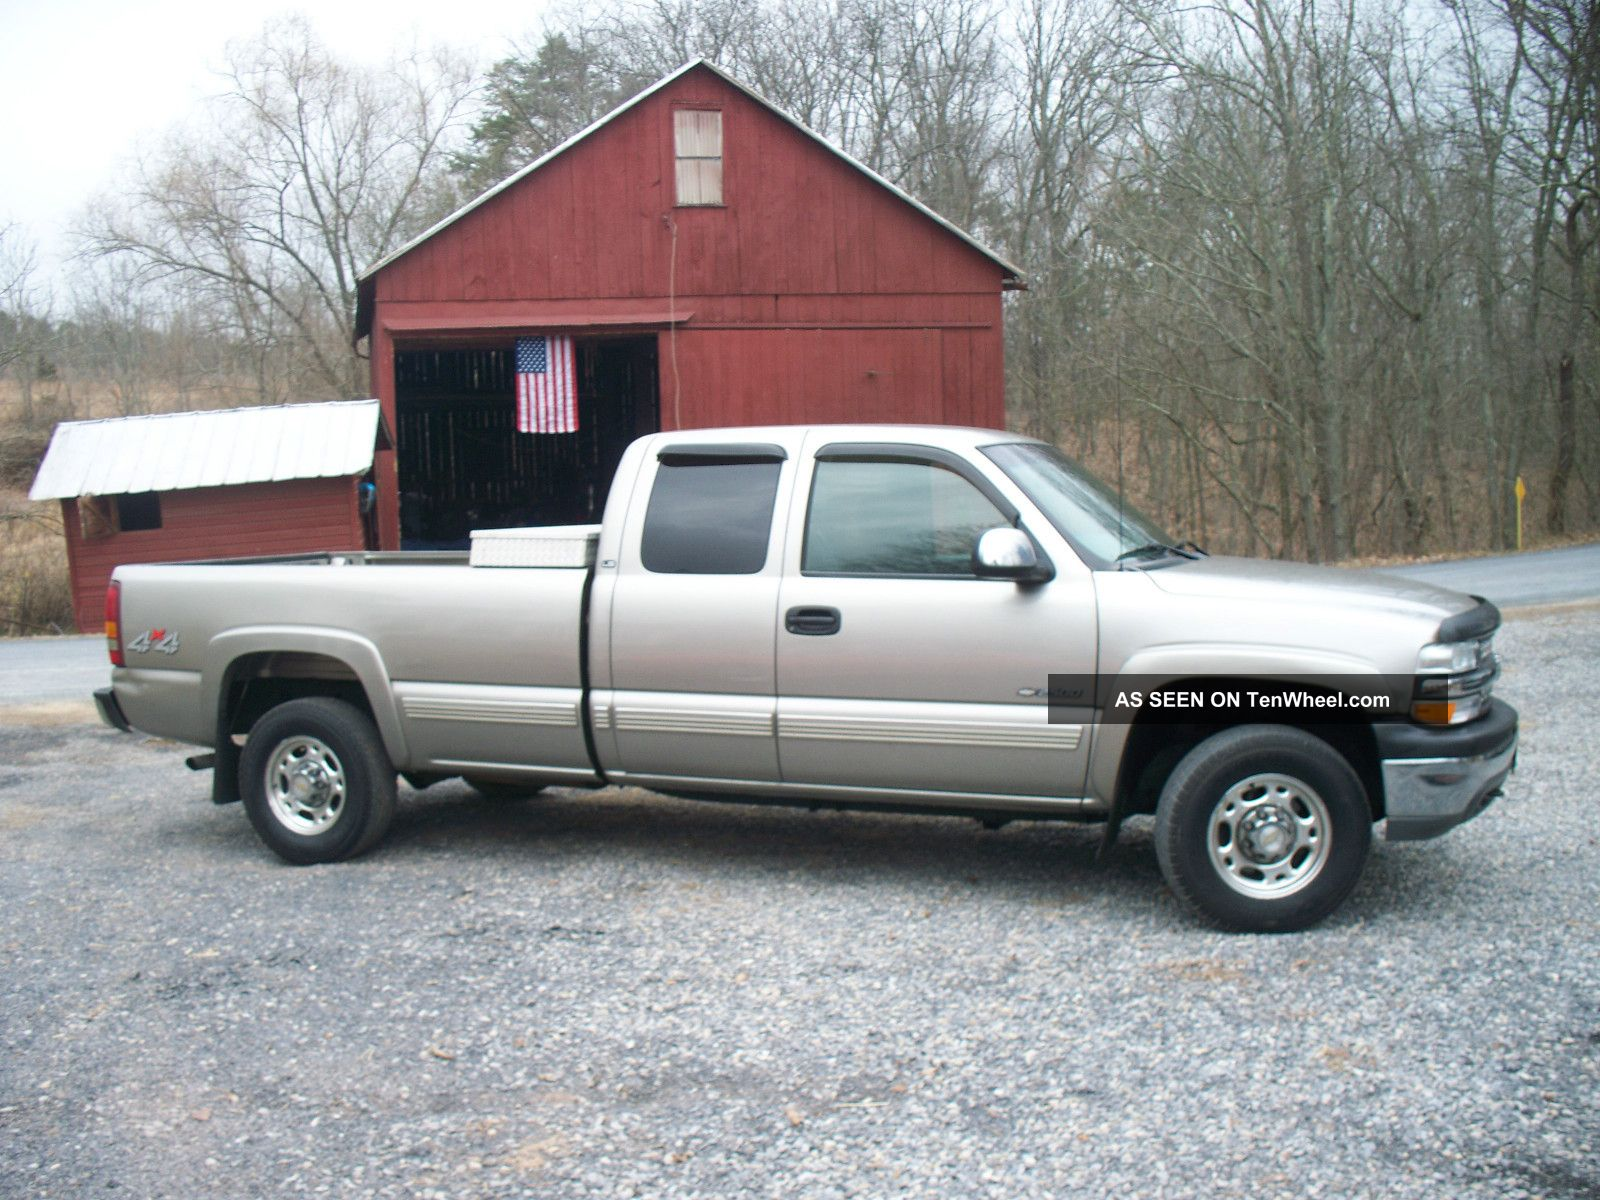 2000 chevy 2500hd 4x4 6 0 v8 5 speed manual 3 door extended cab 8 39 bed. Black Bedroom Furniture Sets. Home Design Ideas